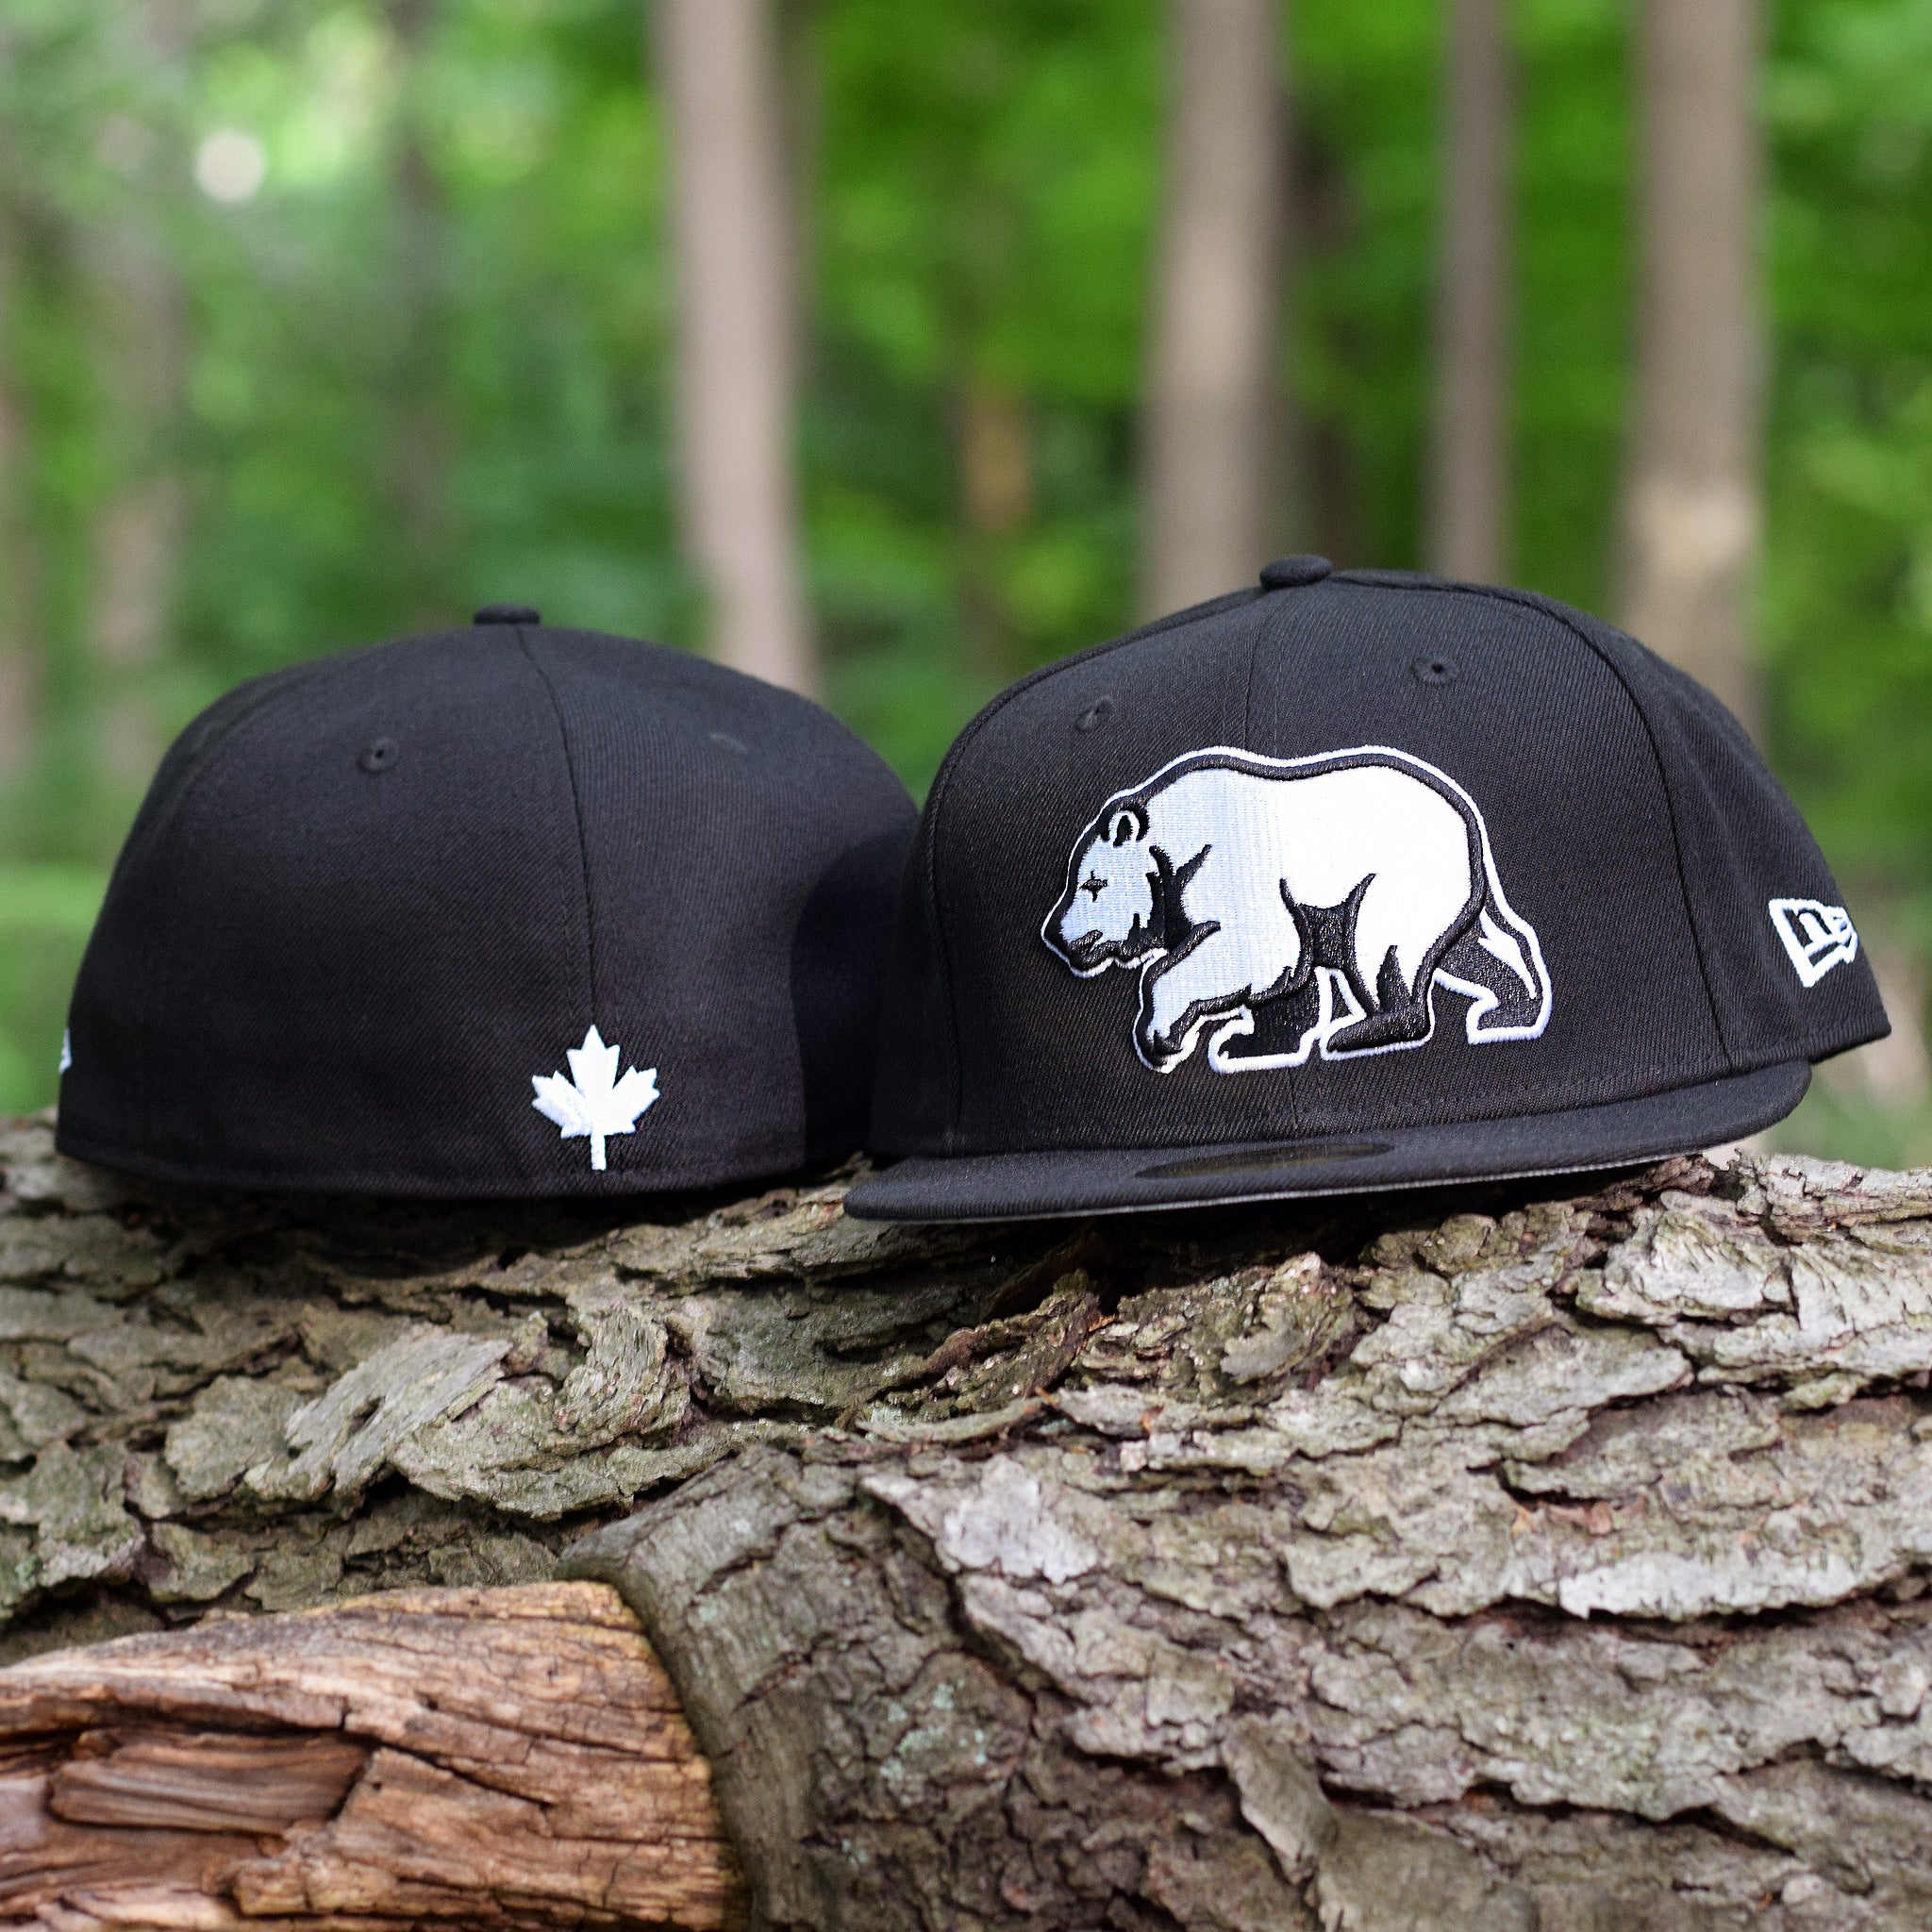 ccc362b0374 ... Noble North Co. - Bear Explorer - Black New Era 59Fifty Hat - Front